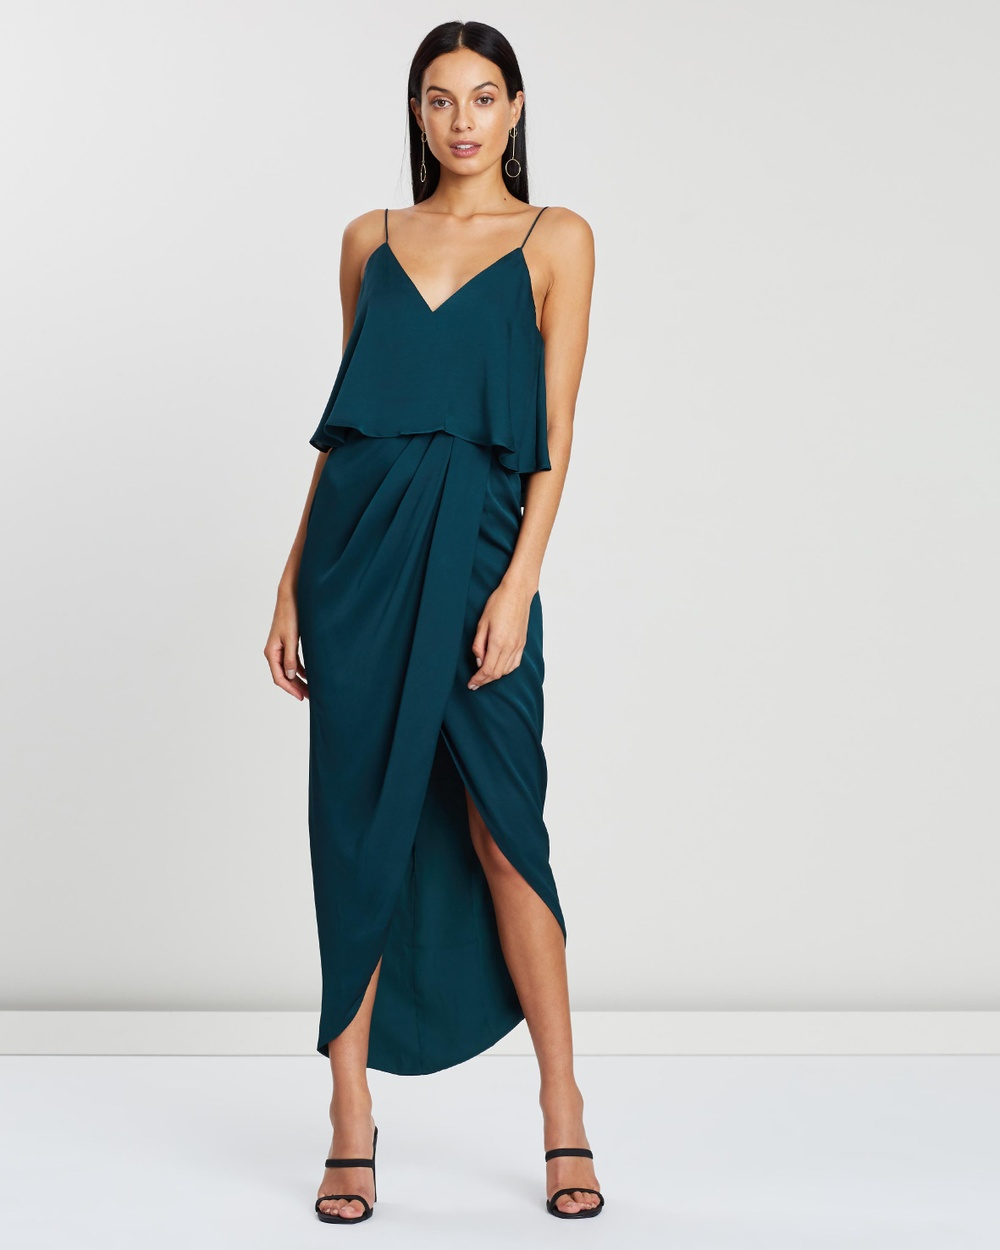 Shona Joy Cocktail Frill Dress Bridesmaid Dresses Emerald Cocktail Frill Dress